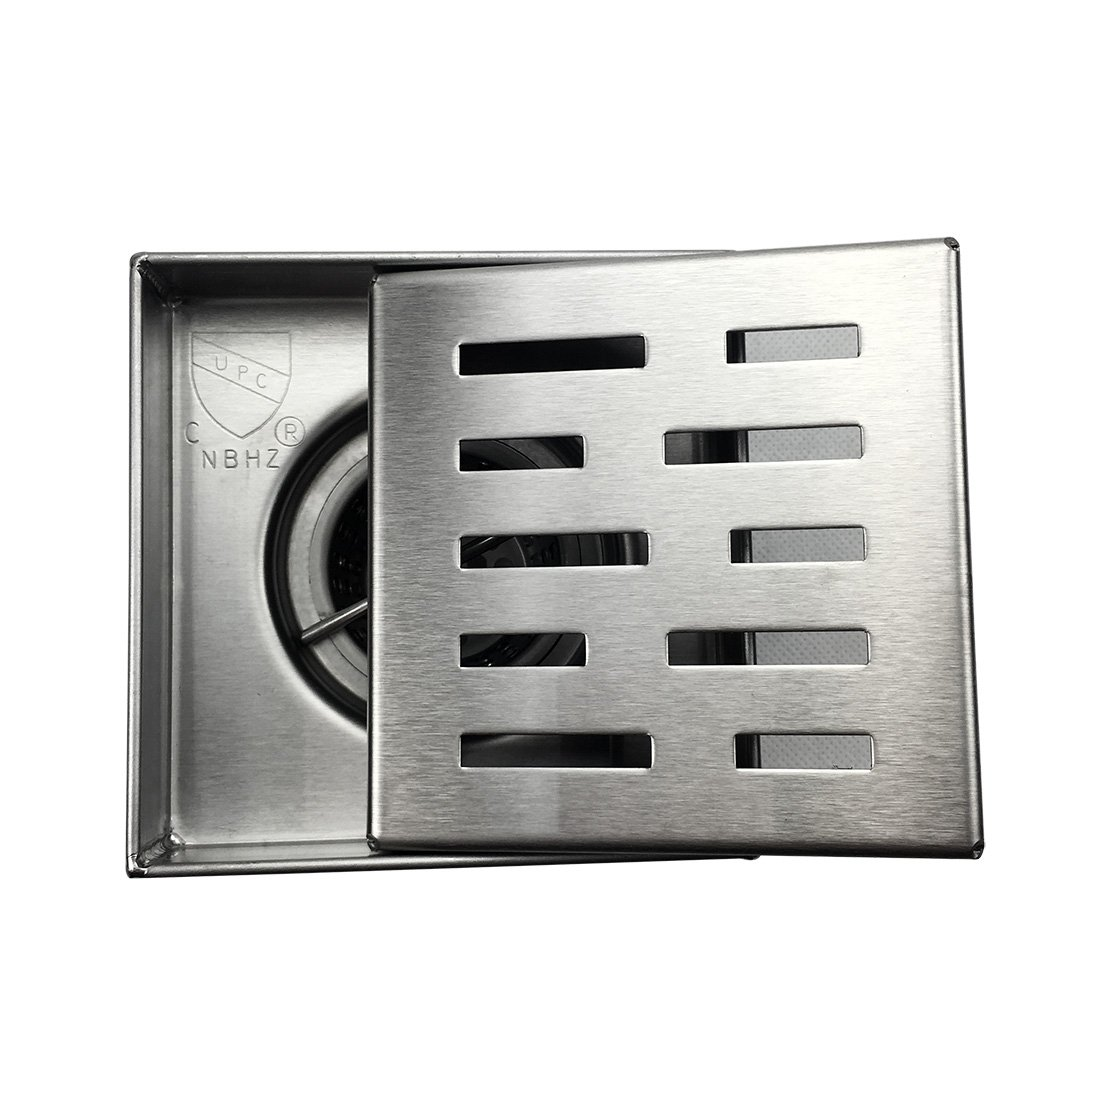 Neodrain Square Shower Drain with Removable Brick Pattern Grate, 4-Inch, Brushed 304 Stainless Steel, With WATERMARK&CUPC Certified, Includes Hair Strainer by Neodrain (Image #2)